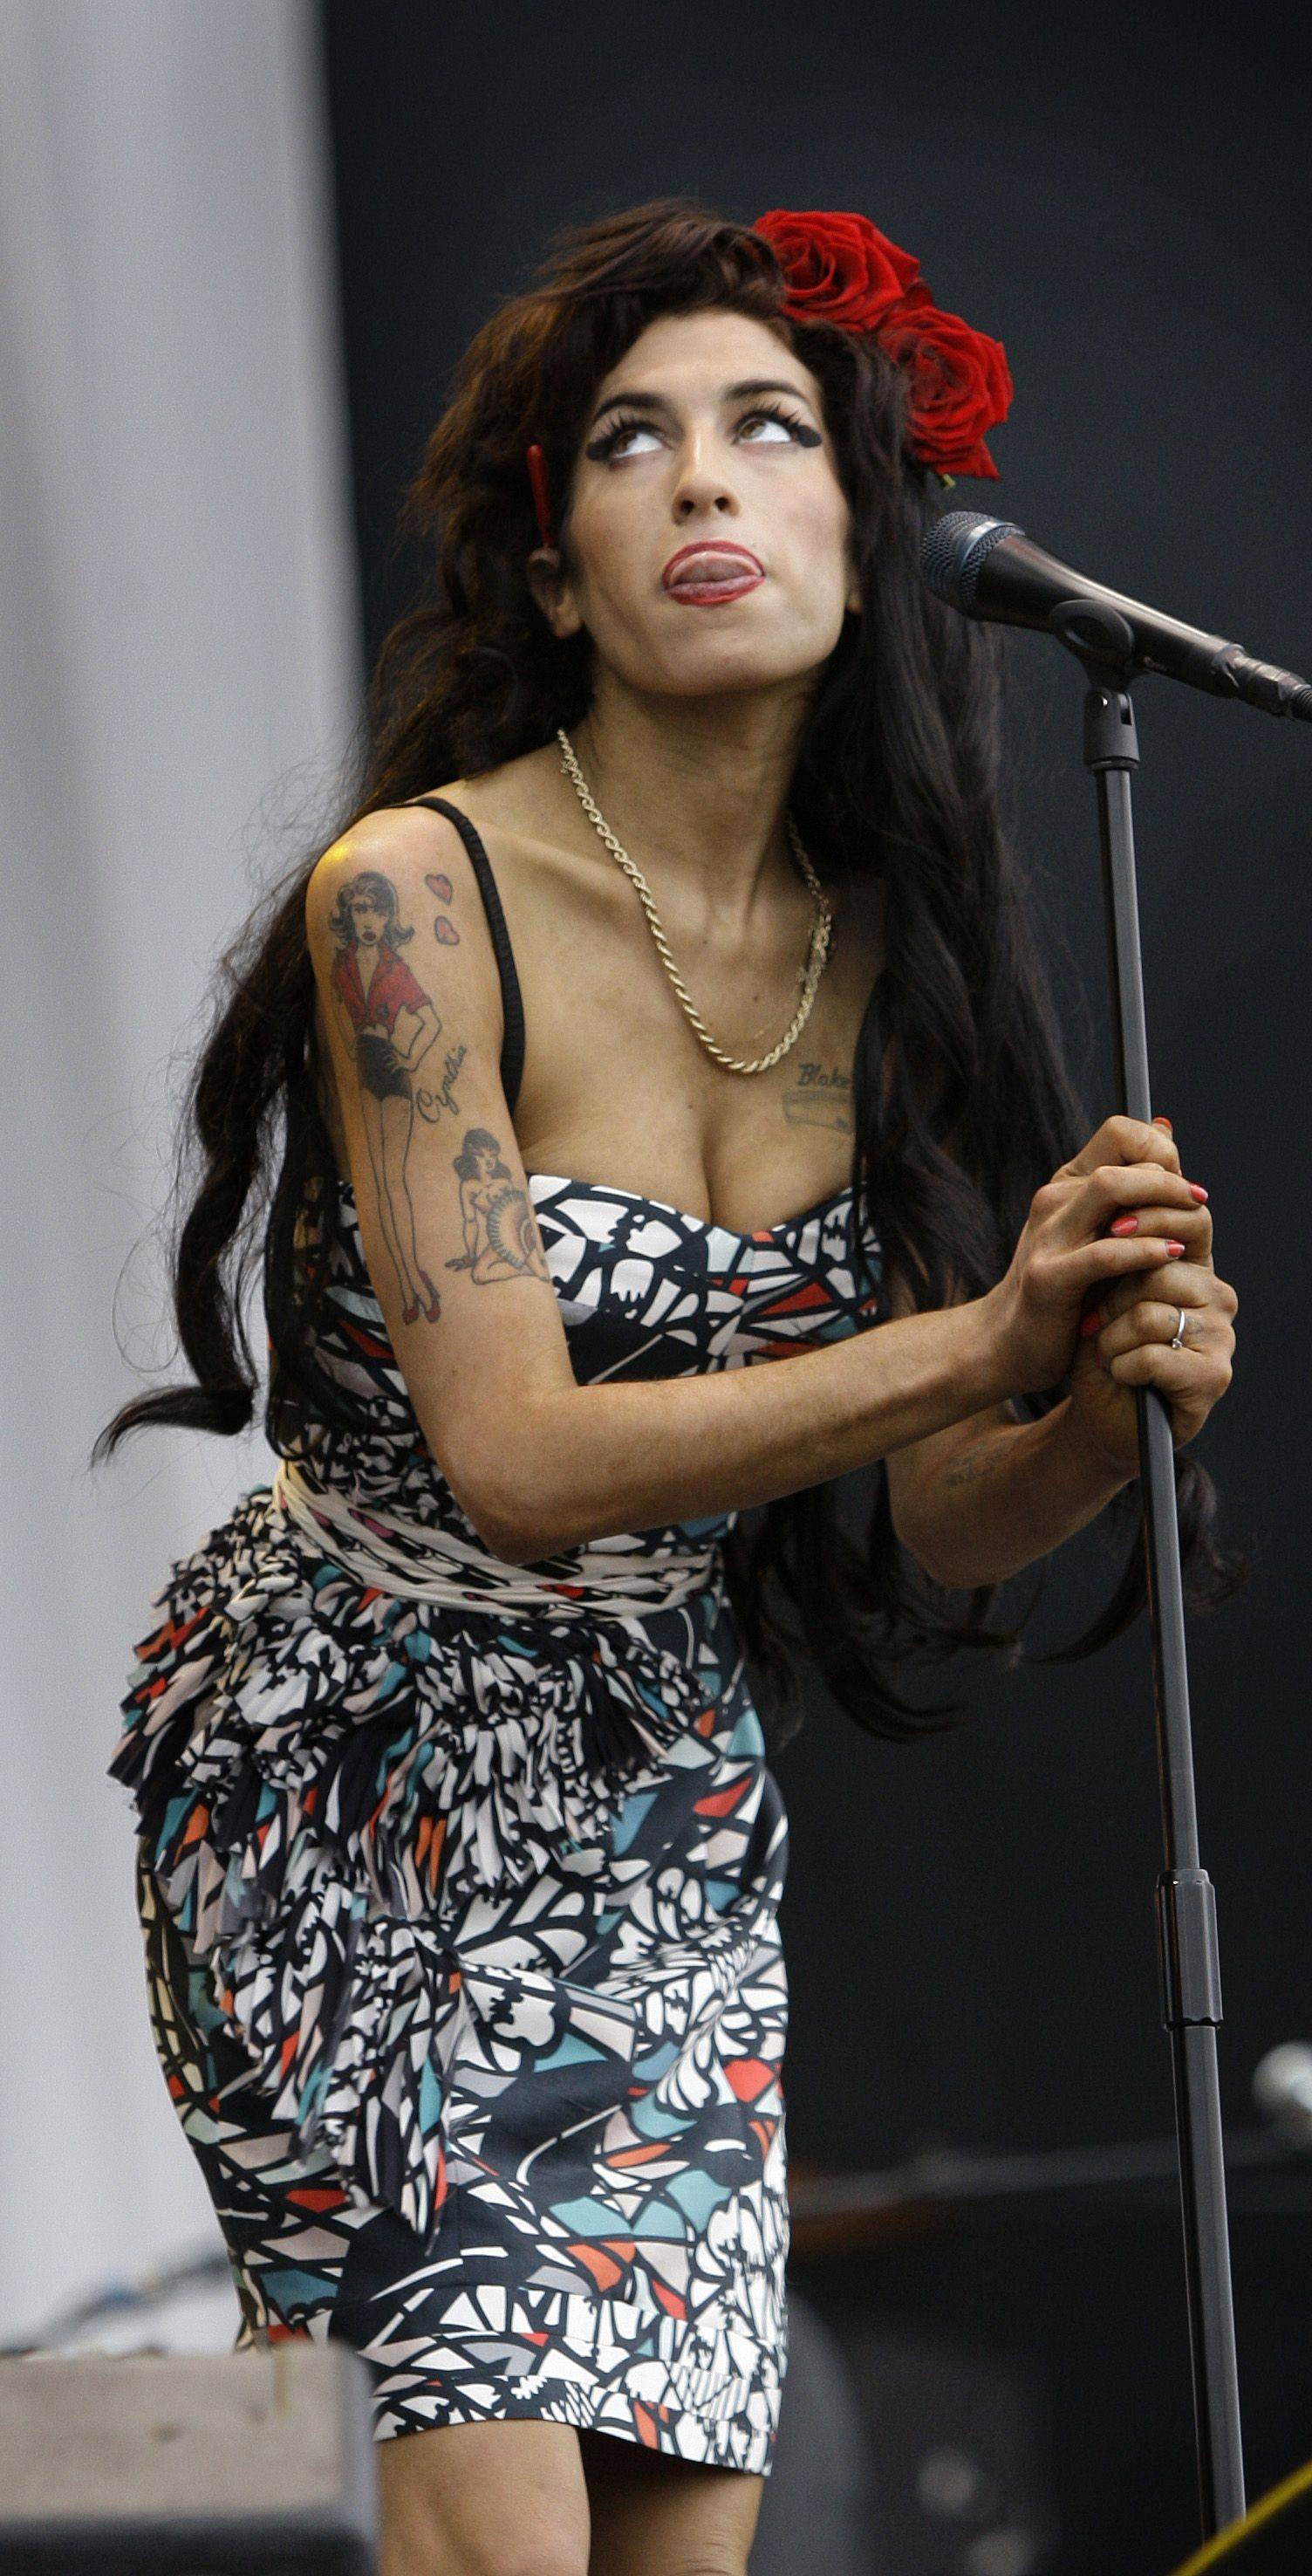 Amy Winehouse performs at the V Festival, near Chelmsford, England.